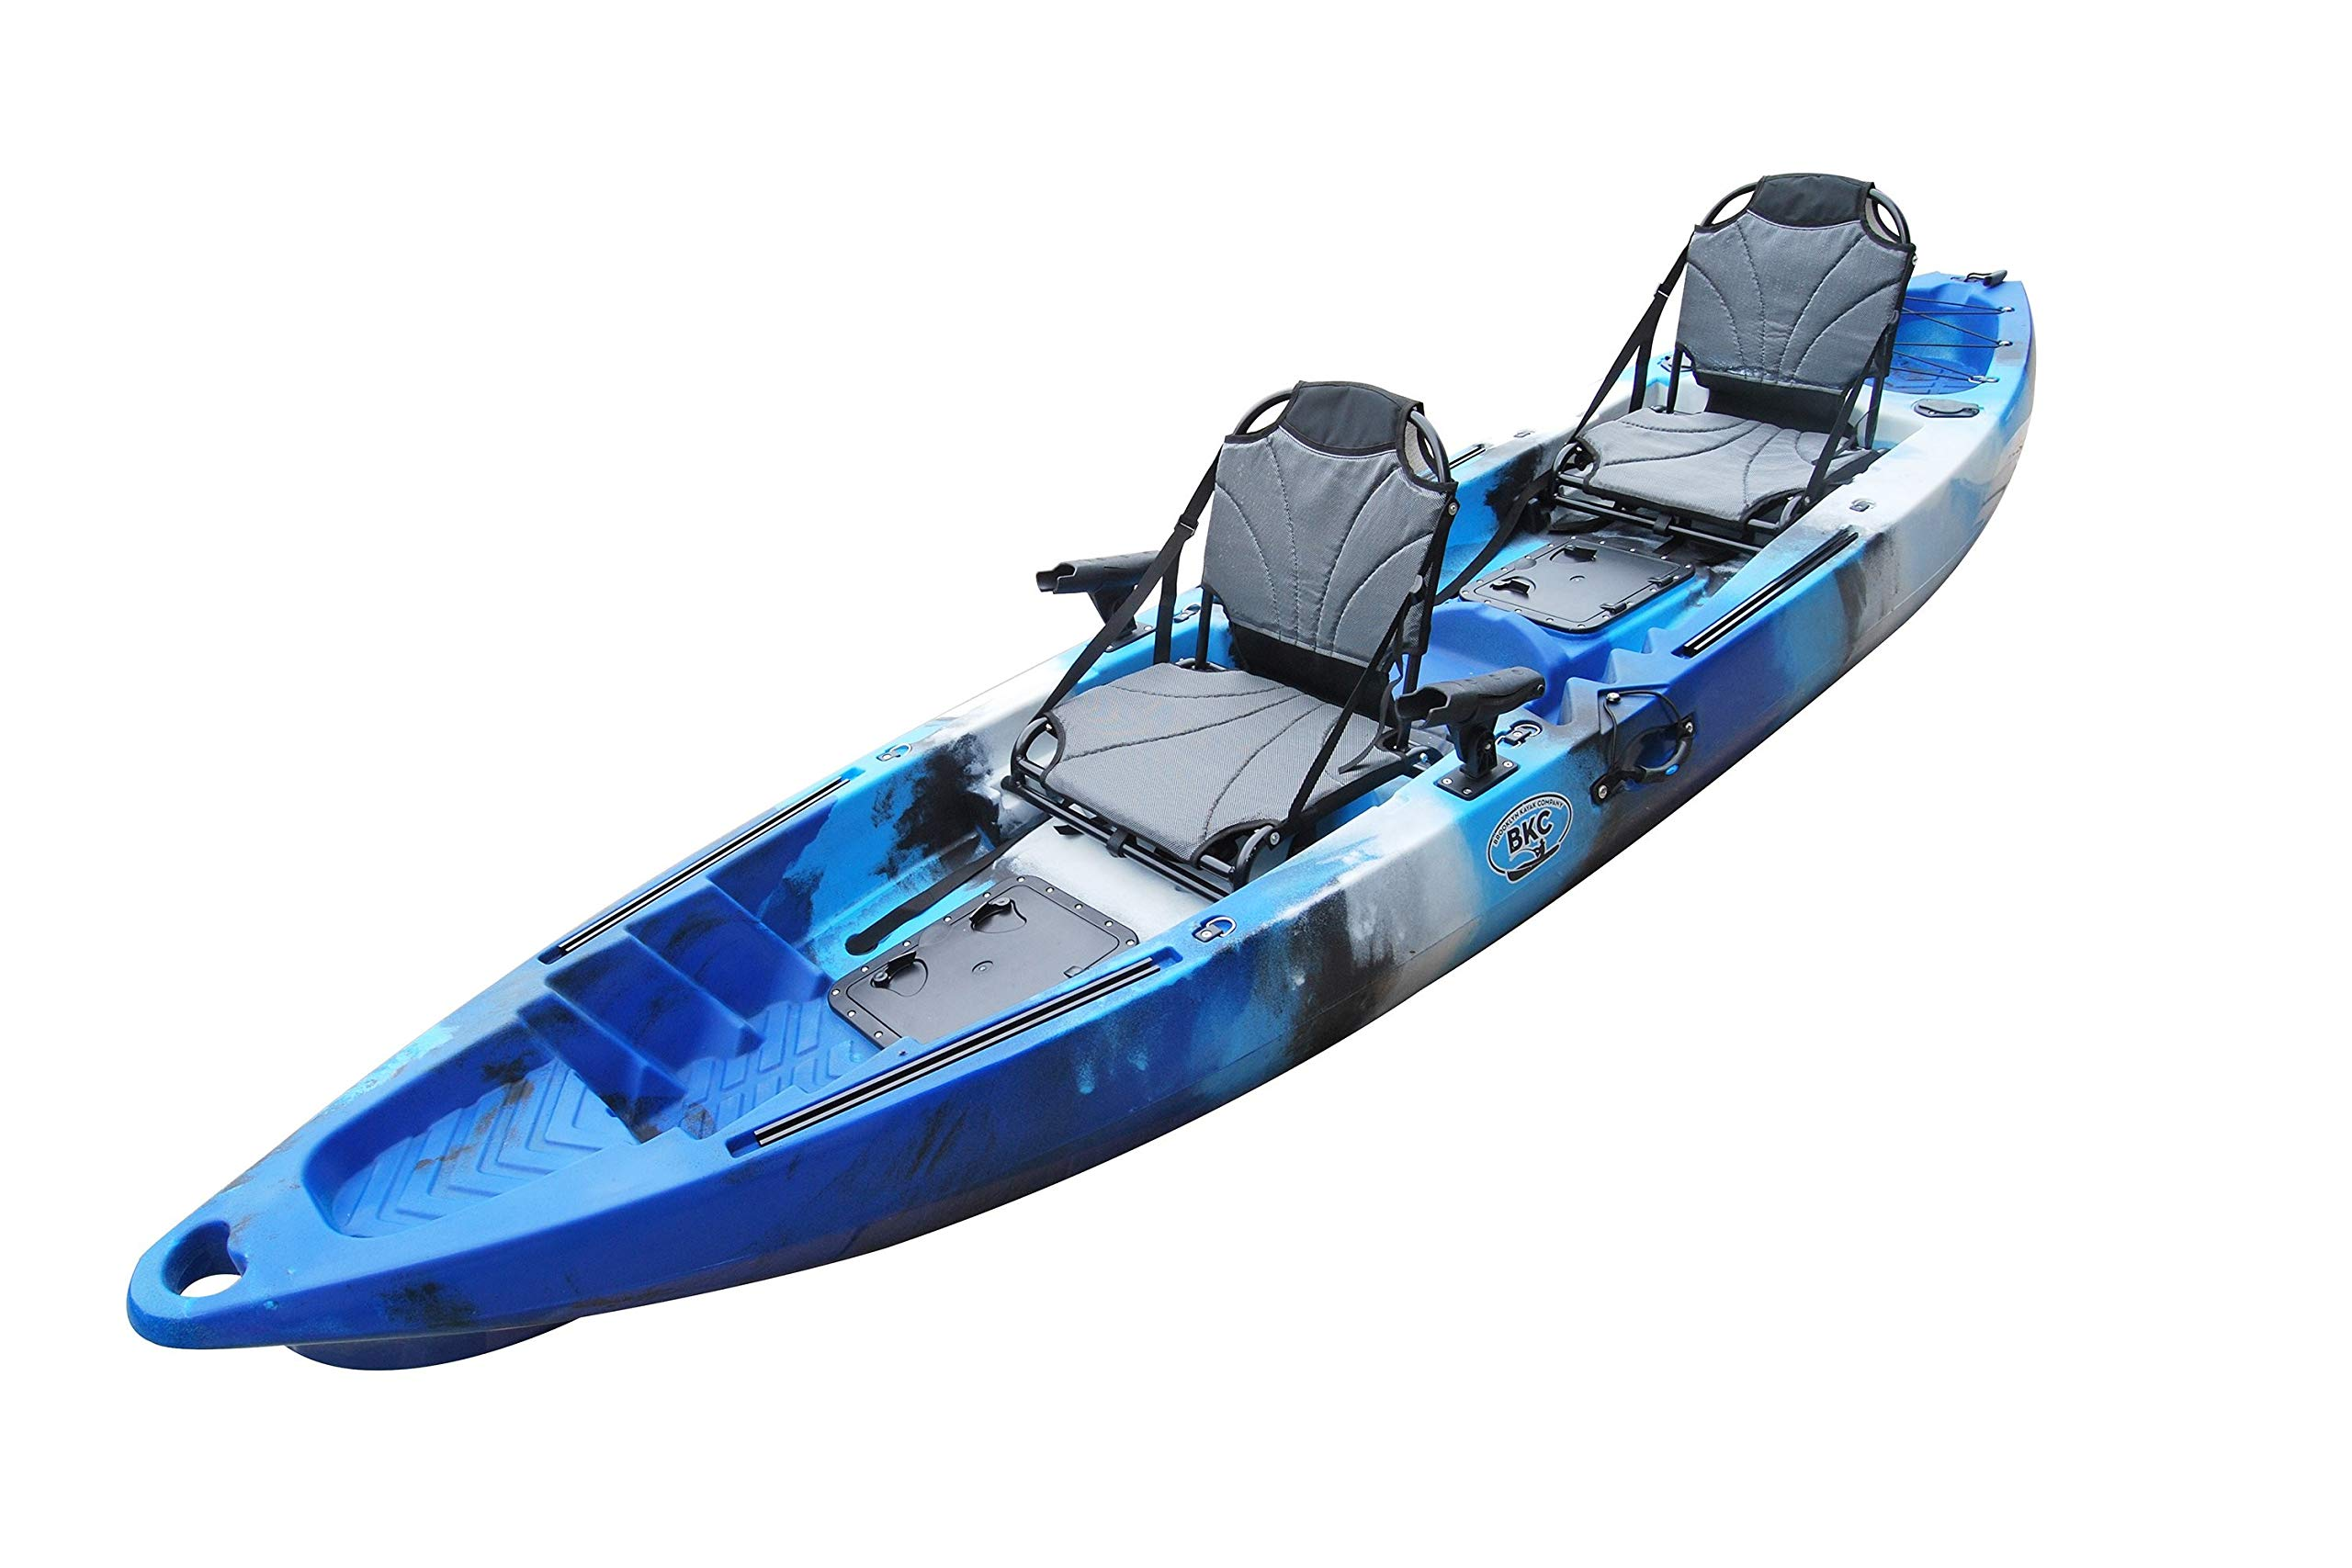 BKC TK122 12.9' Tandem Fishing Kayak W/Upright Aluminum Frame with Backrest Support Seats, Paddles, 4 Rod Holders Included 2-3 Person Angler Kayak by Brooklyn Kayak Company